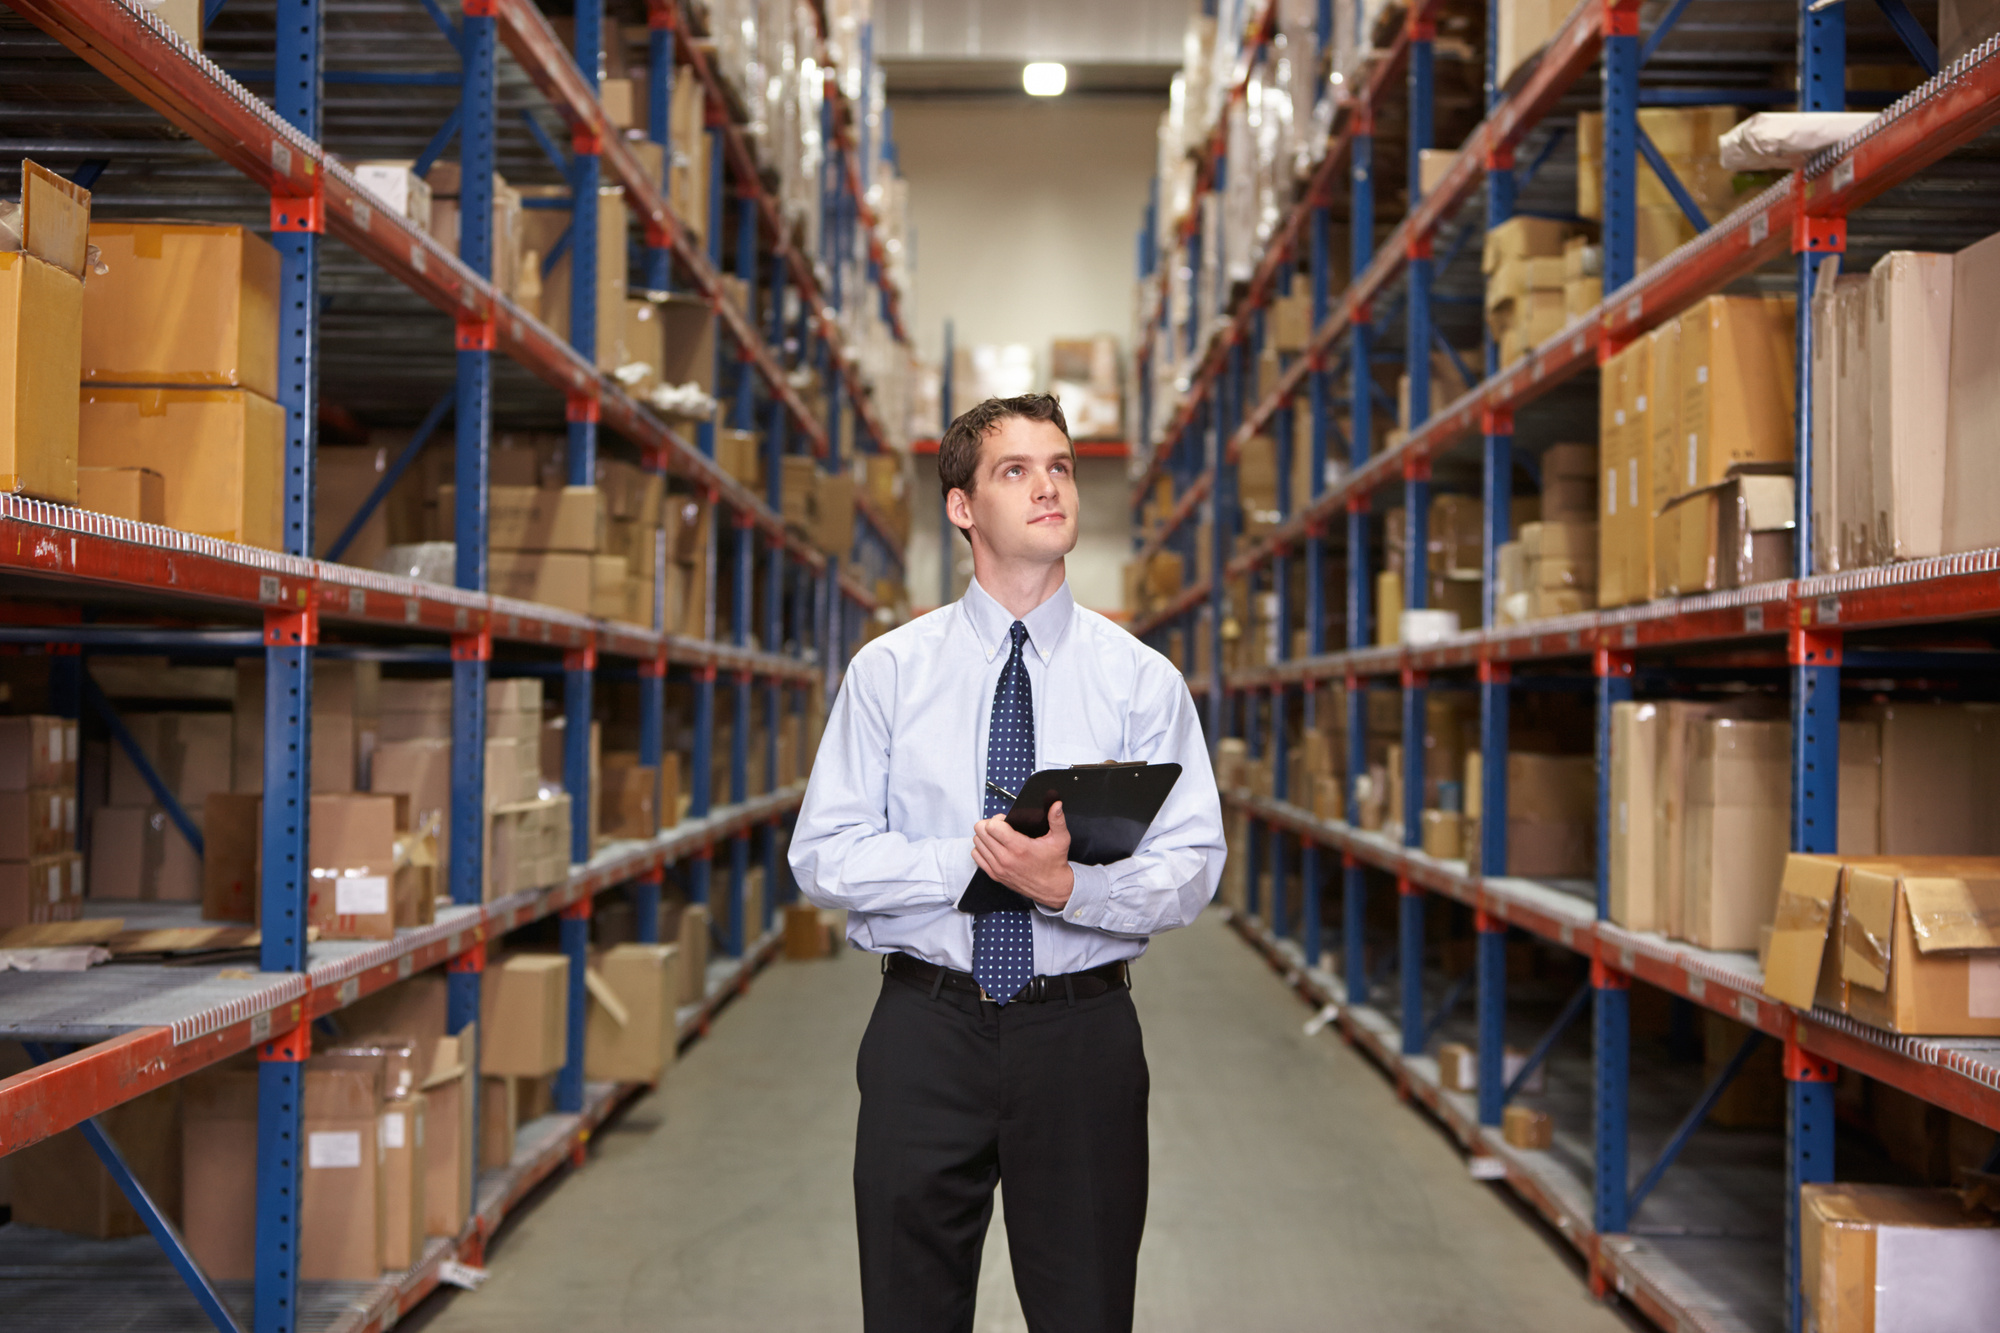 6 Common Inventory Control Mistakes and How to Avoid Them